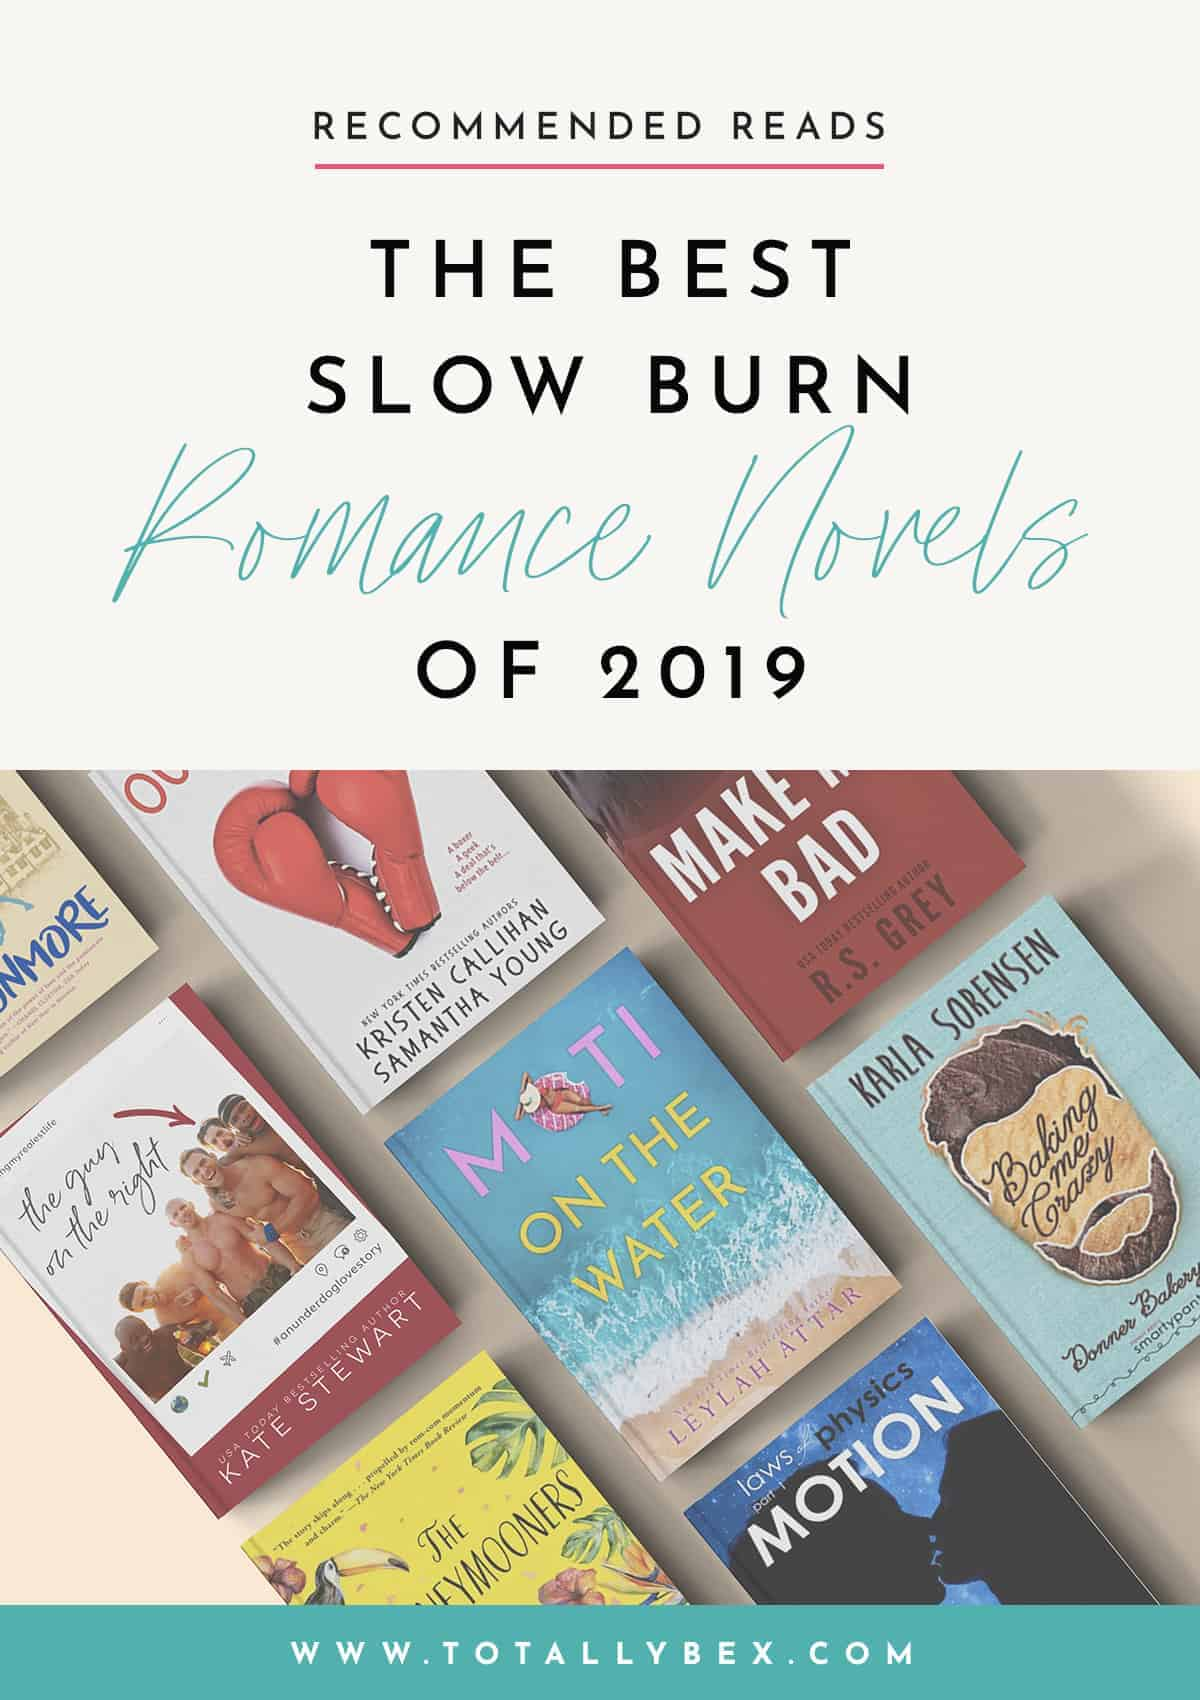 11 of the Best Slow Burn Romance Novels 2019